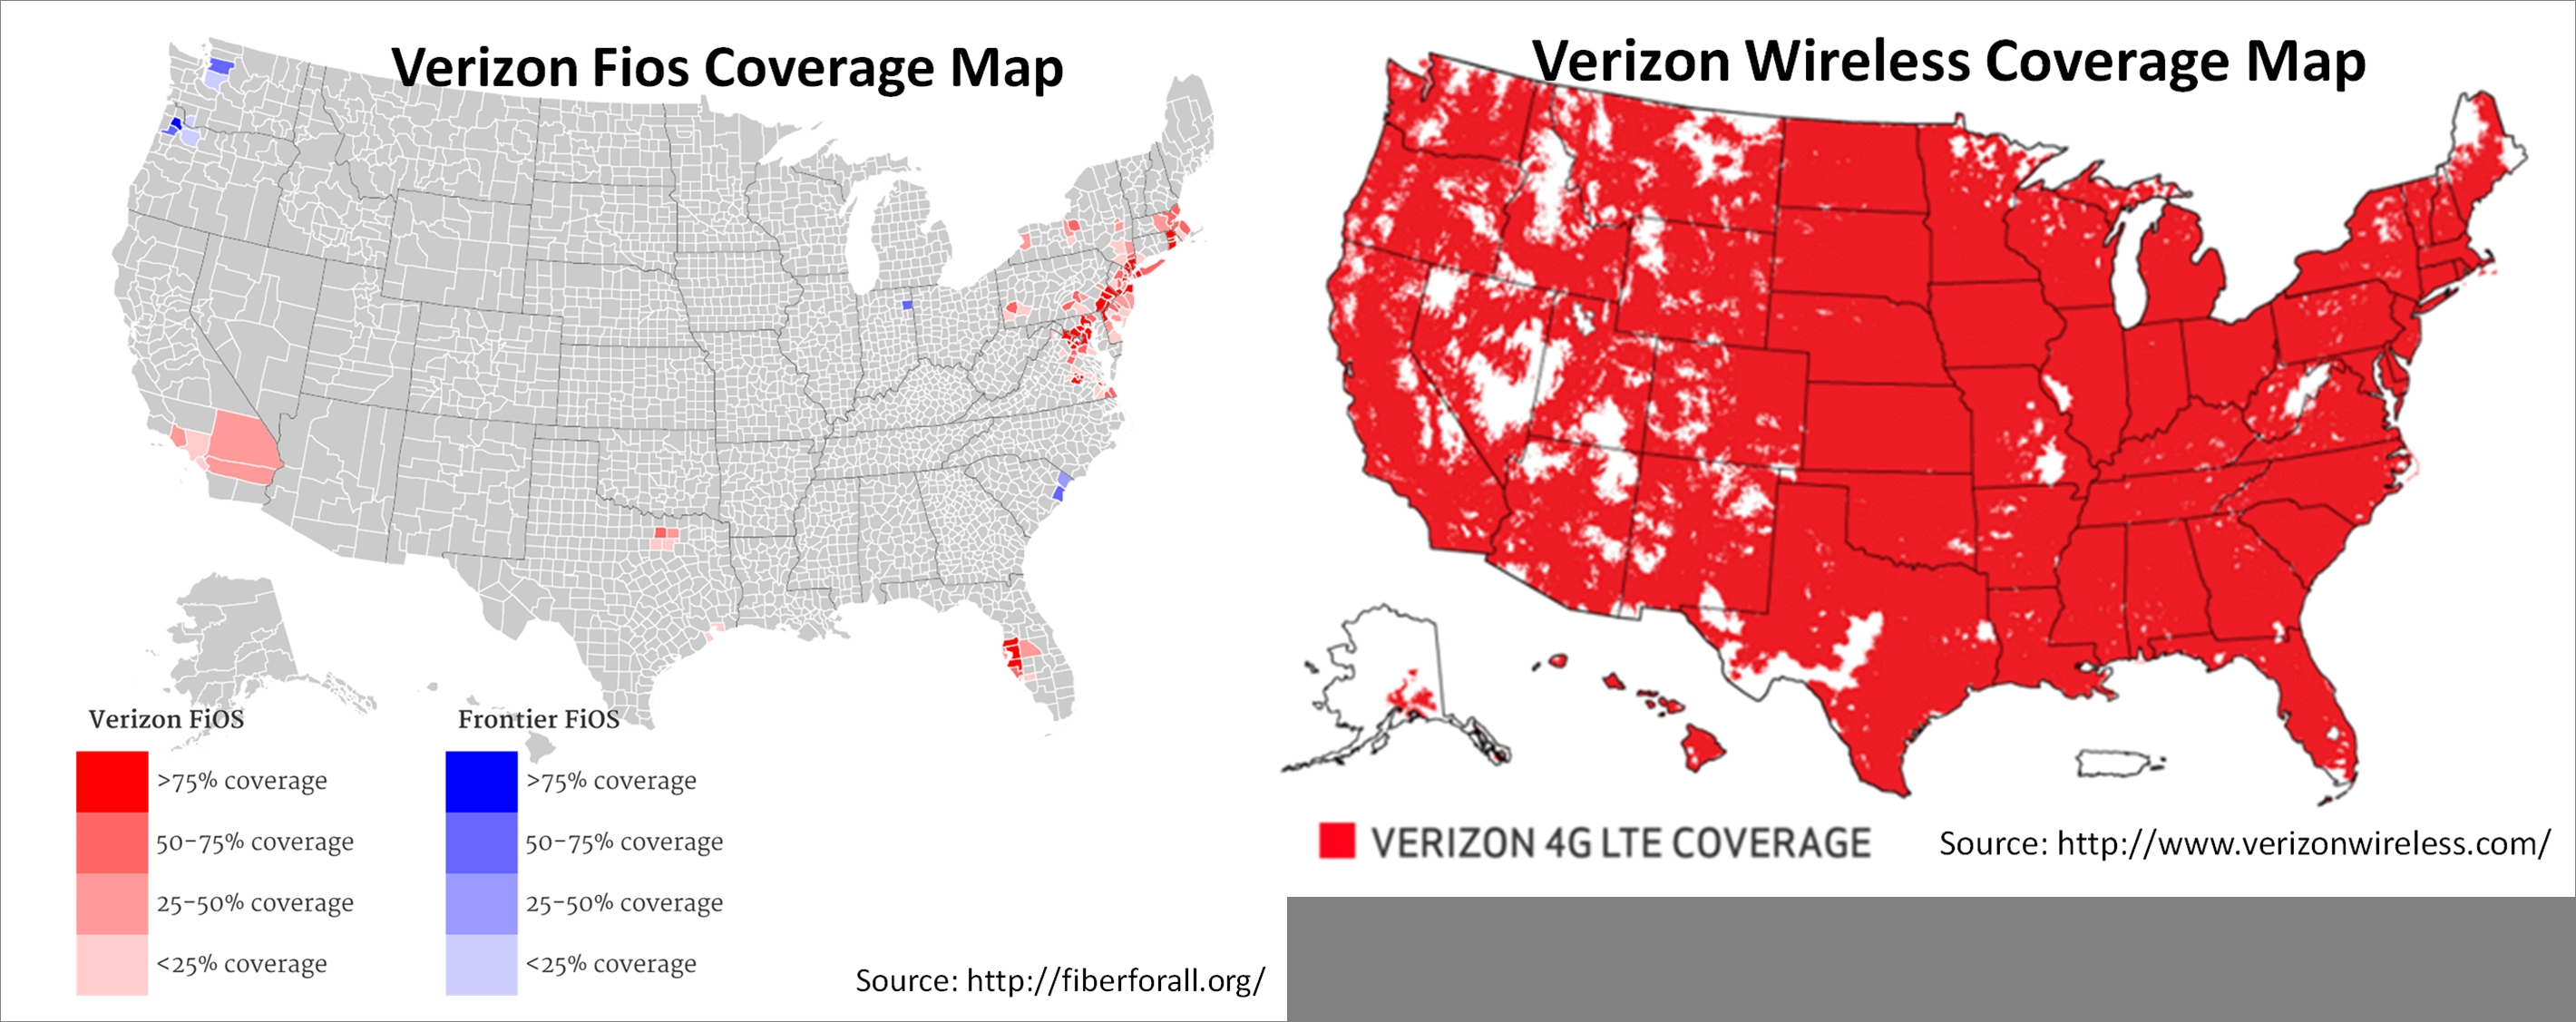 Reference Of Map With States. Verizon Fios Coverage Map - Reference - Verizon Fios Availability Map Florida